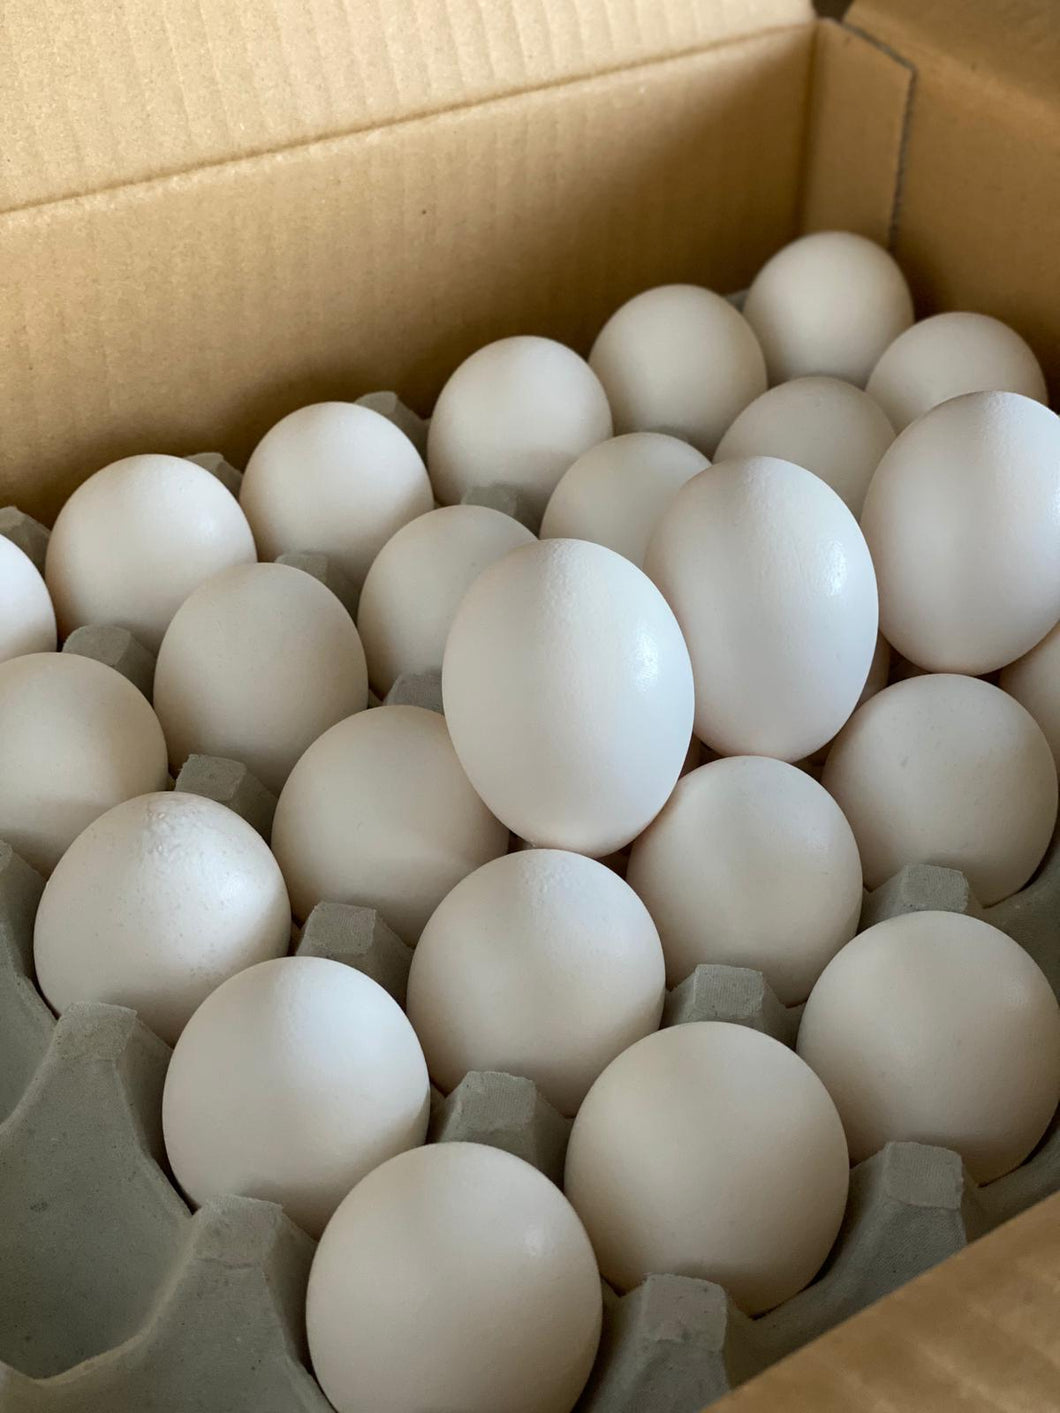 Tsukuba Farm Fresh Vitamin D Japanese Eggs - 165 Eggs/Ctn